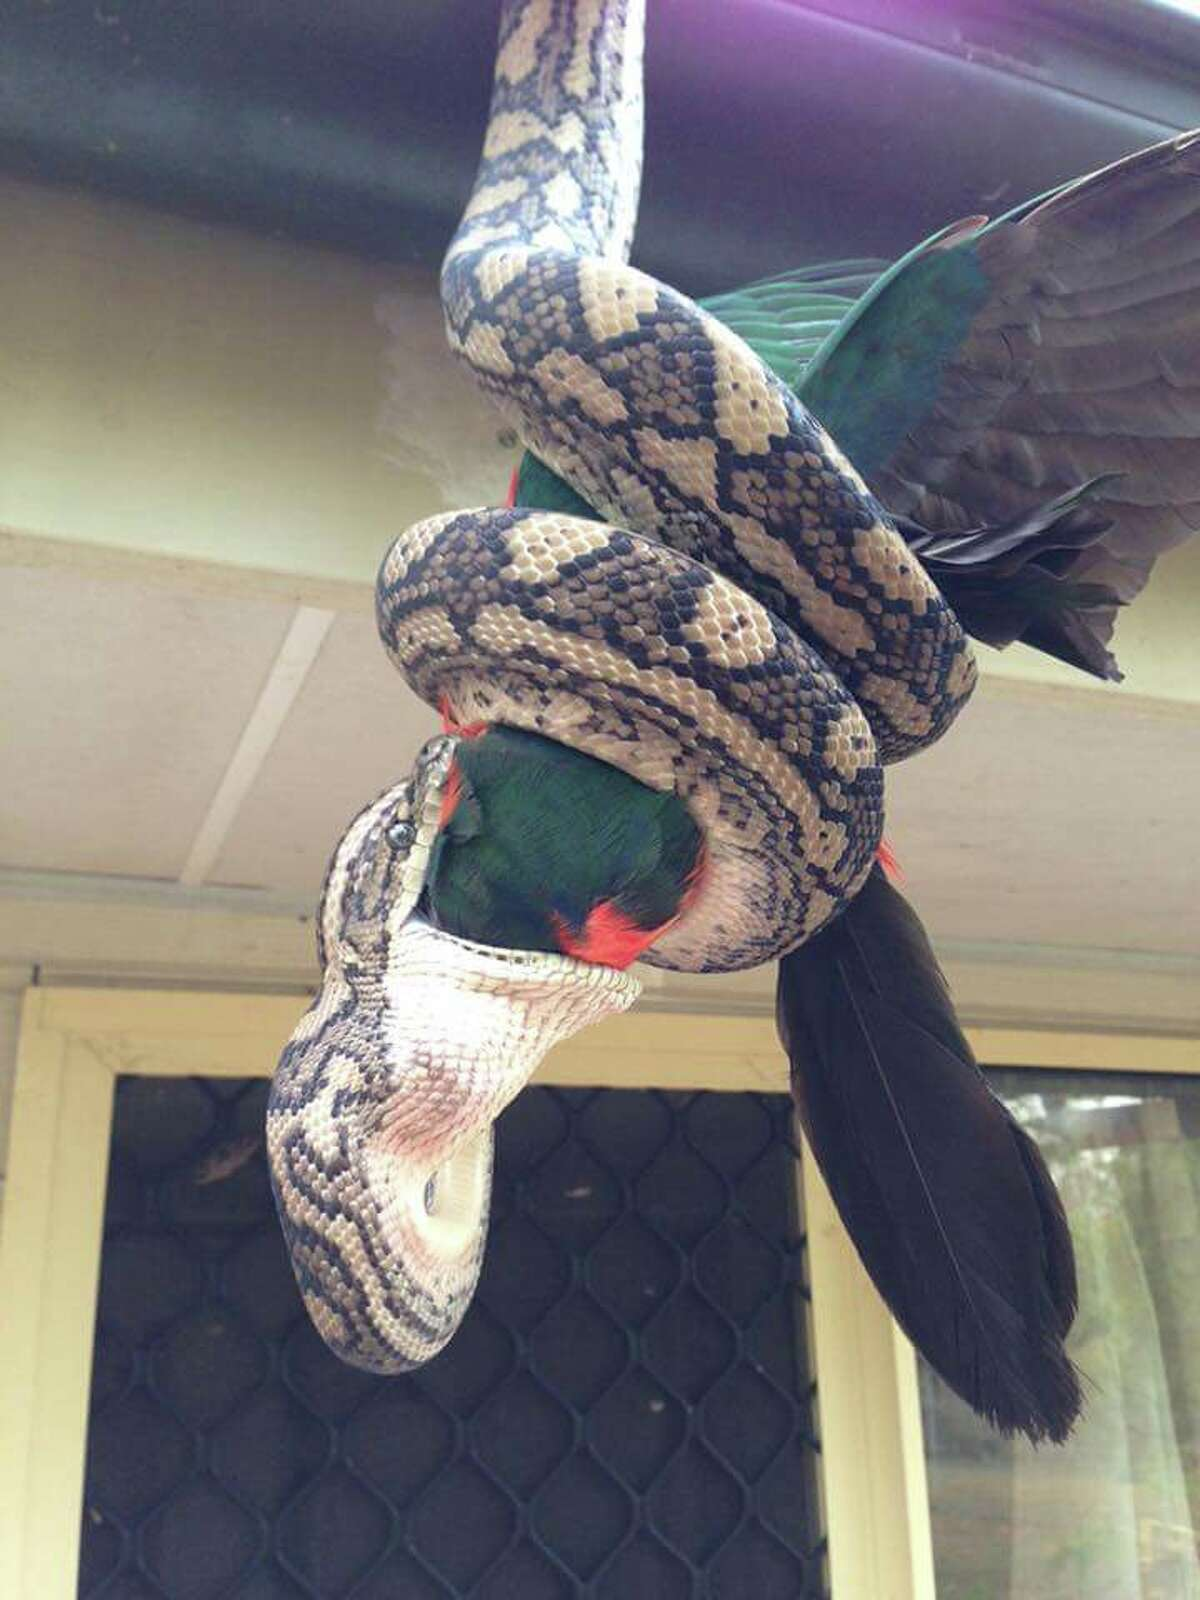 Another angle shows how wide the python's mouth opens to eat the bird.